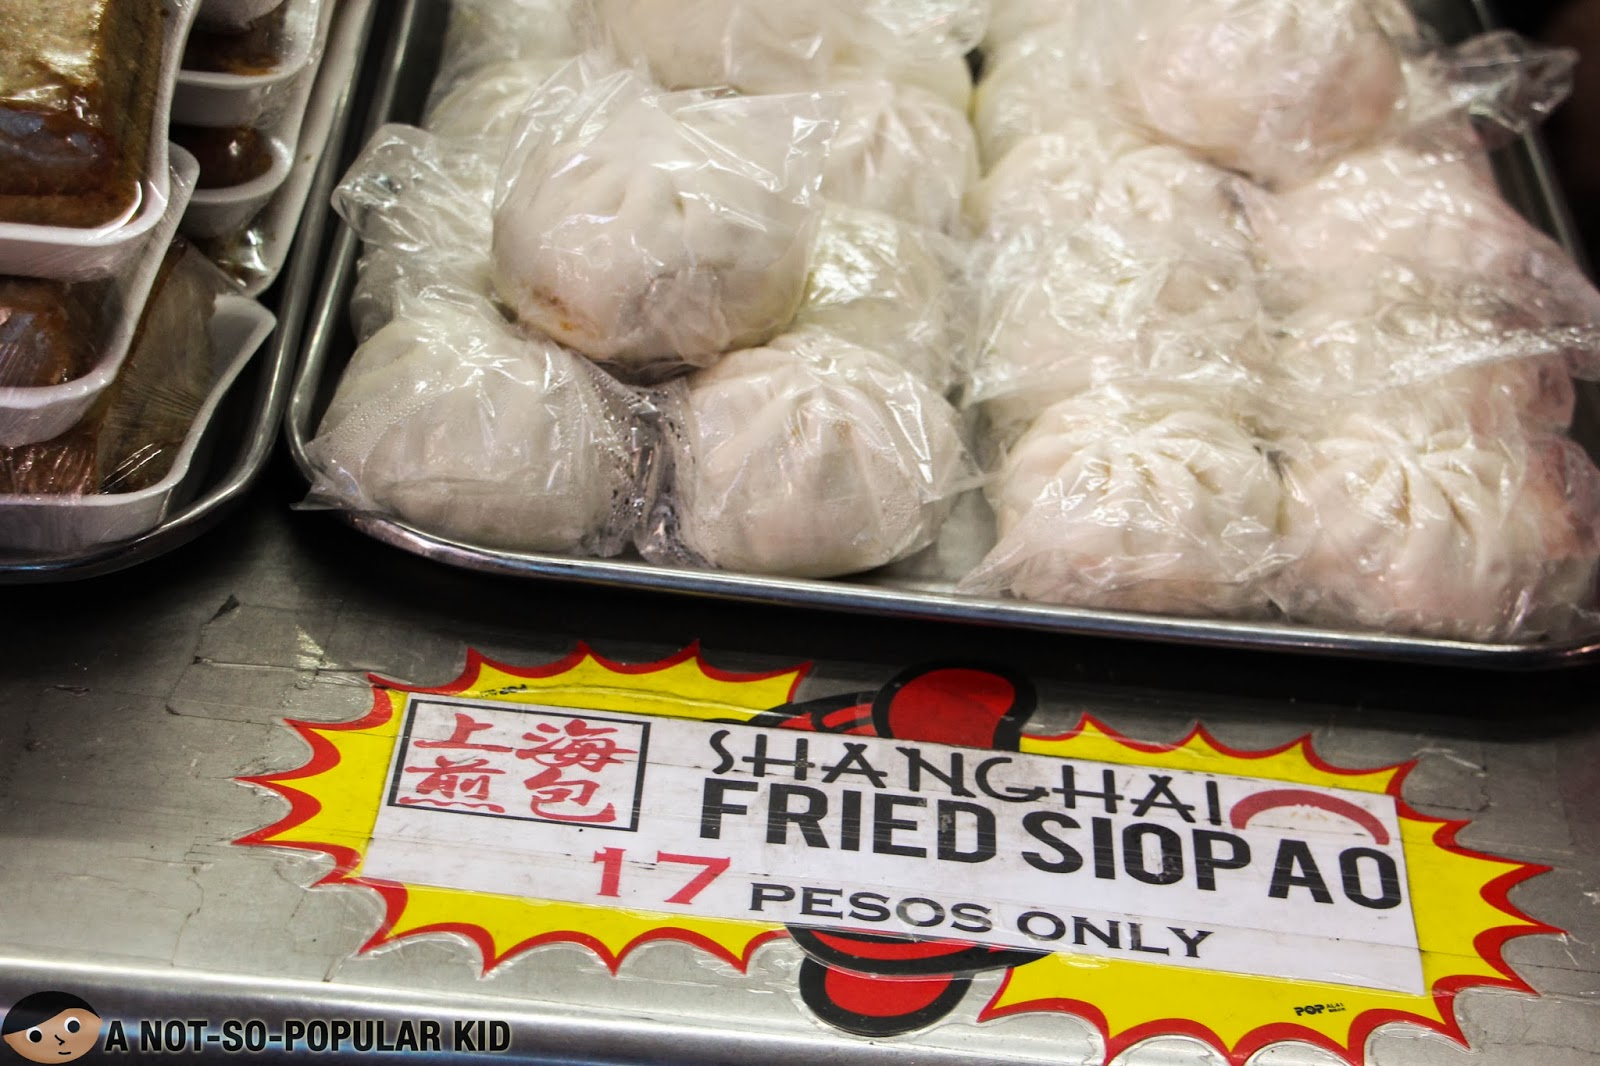 Shanghai Fried Siopao for only P17